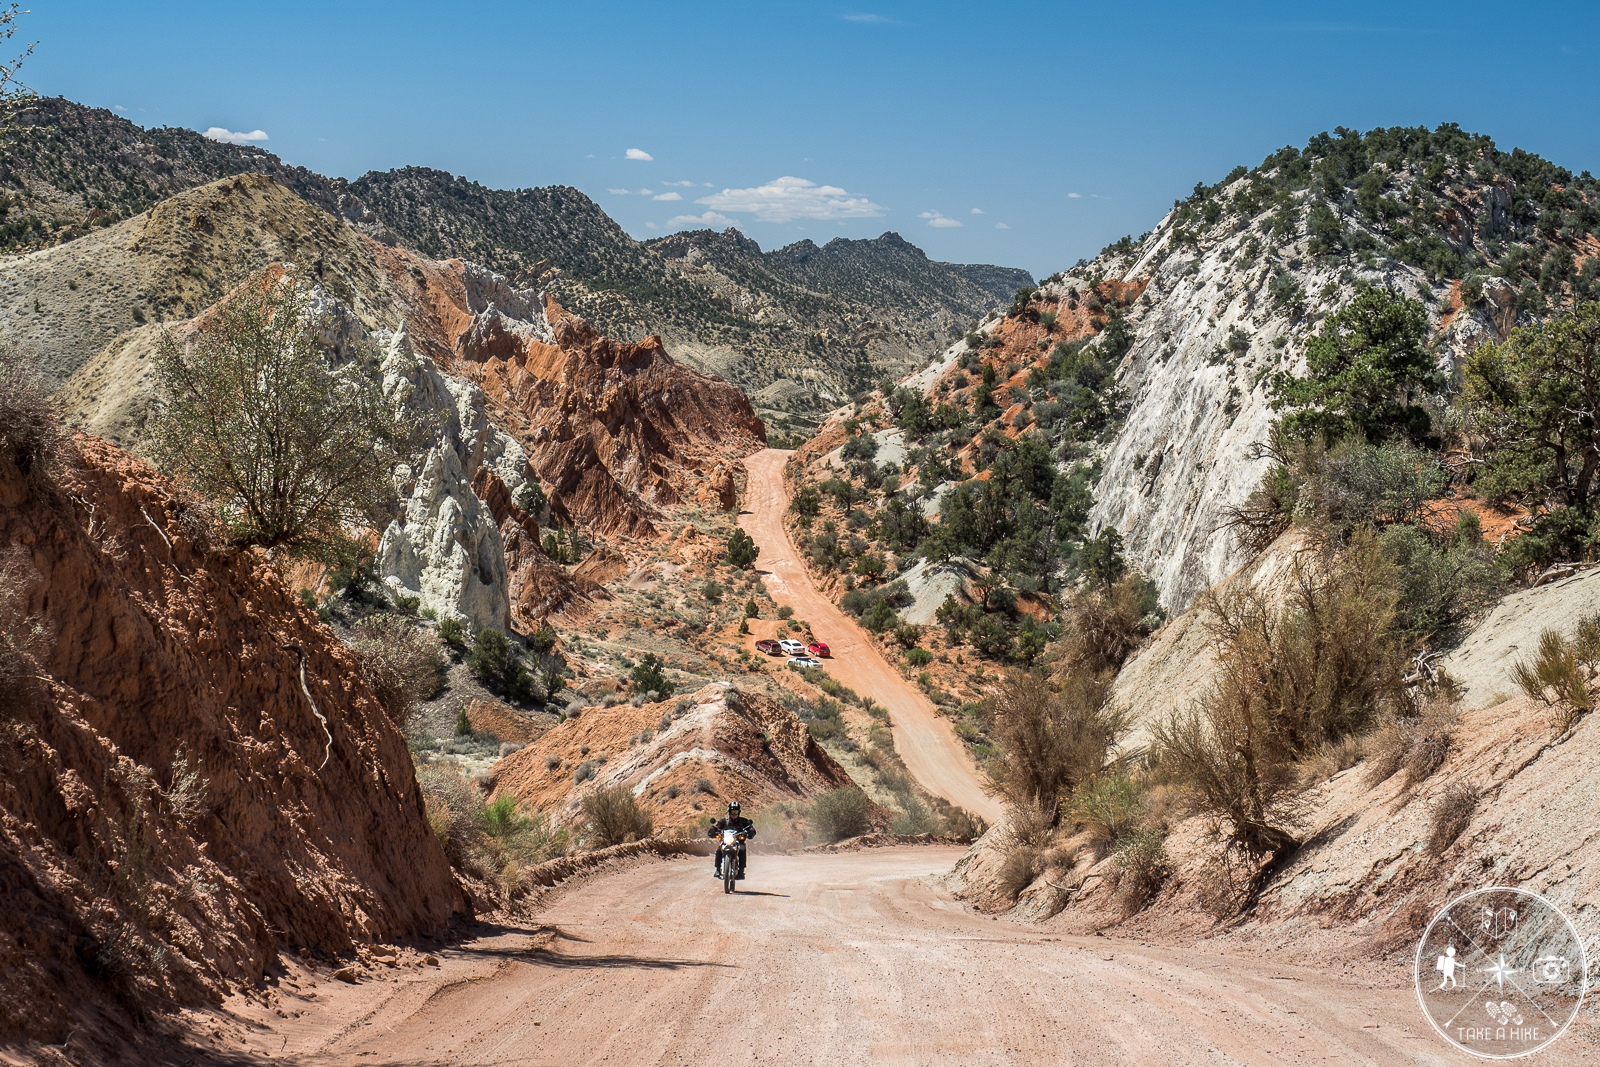 Cottonwood Canyon Road - Coxcomb